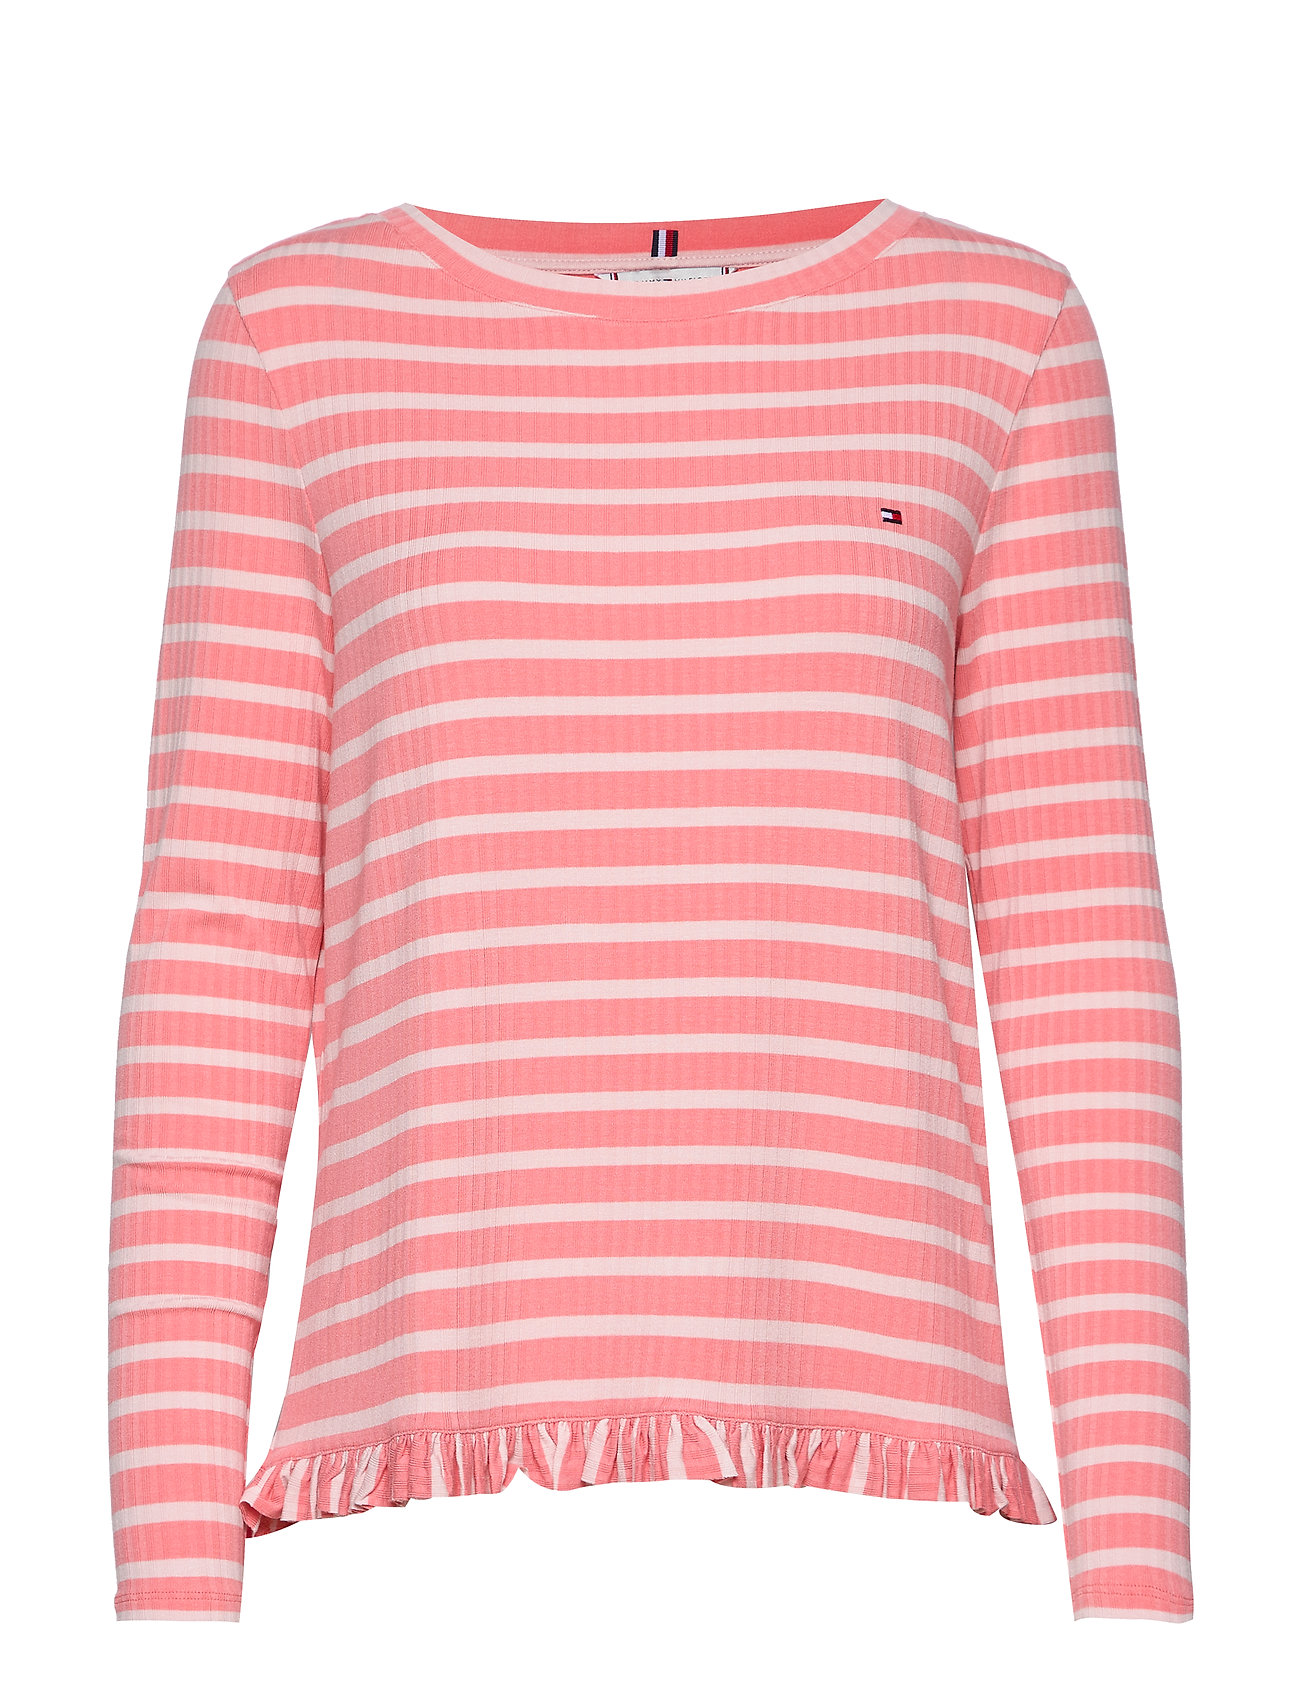 Tommy Hilfiger TANJA RELAXED BOAT-NK TOP LS - BRETON STP / PINK GR. - PALE P